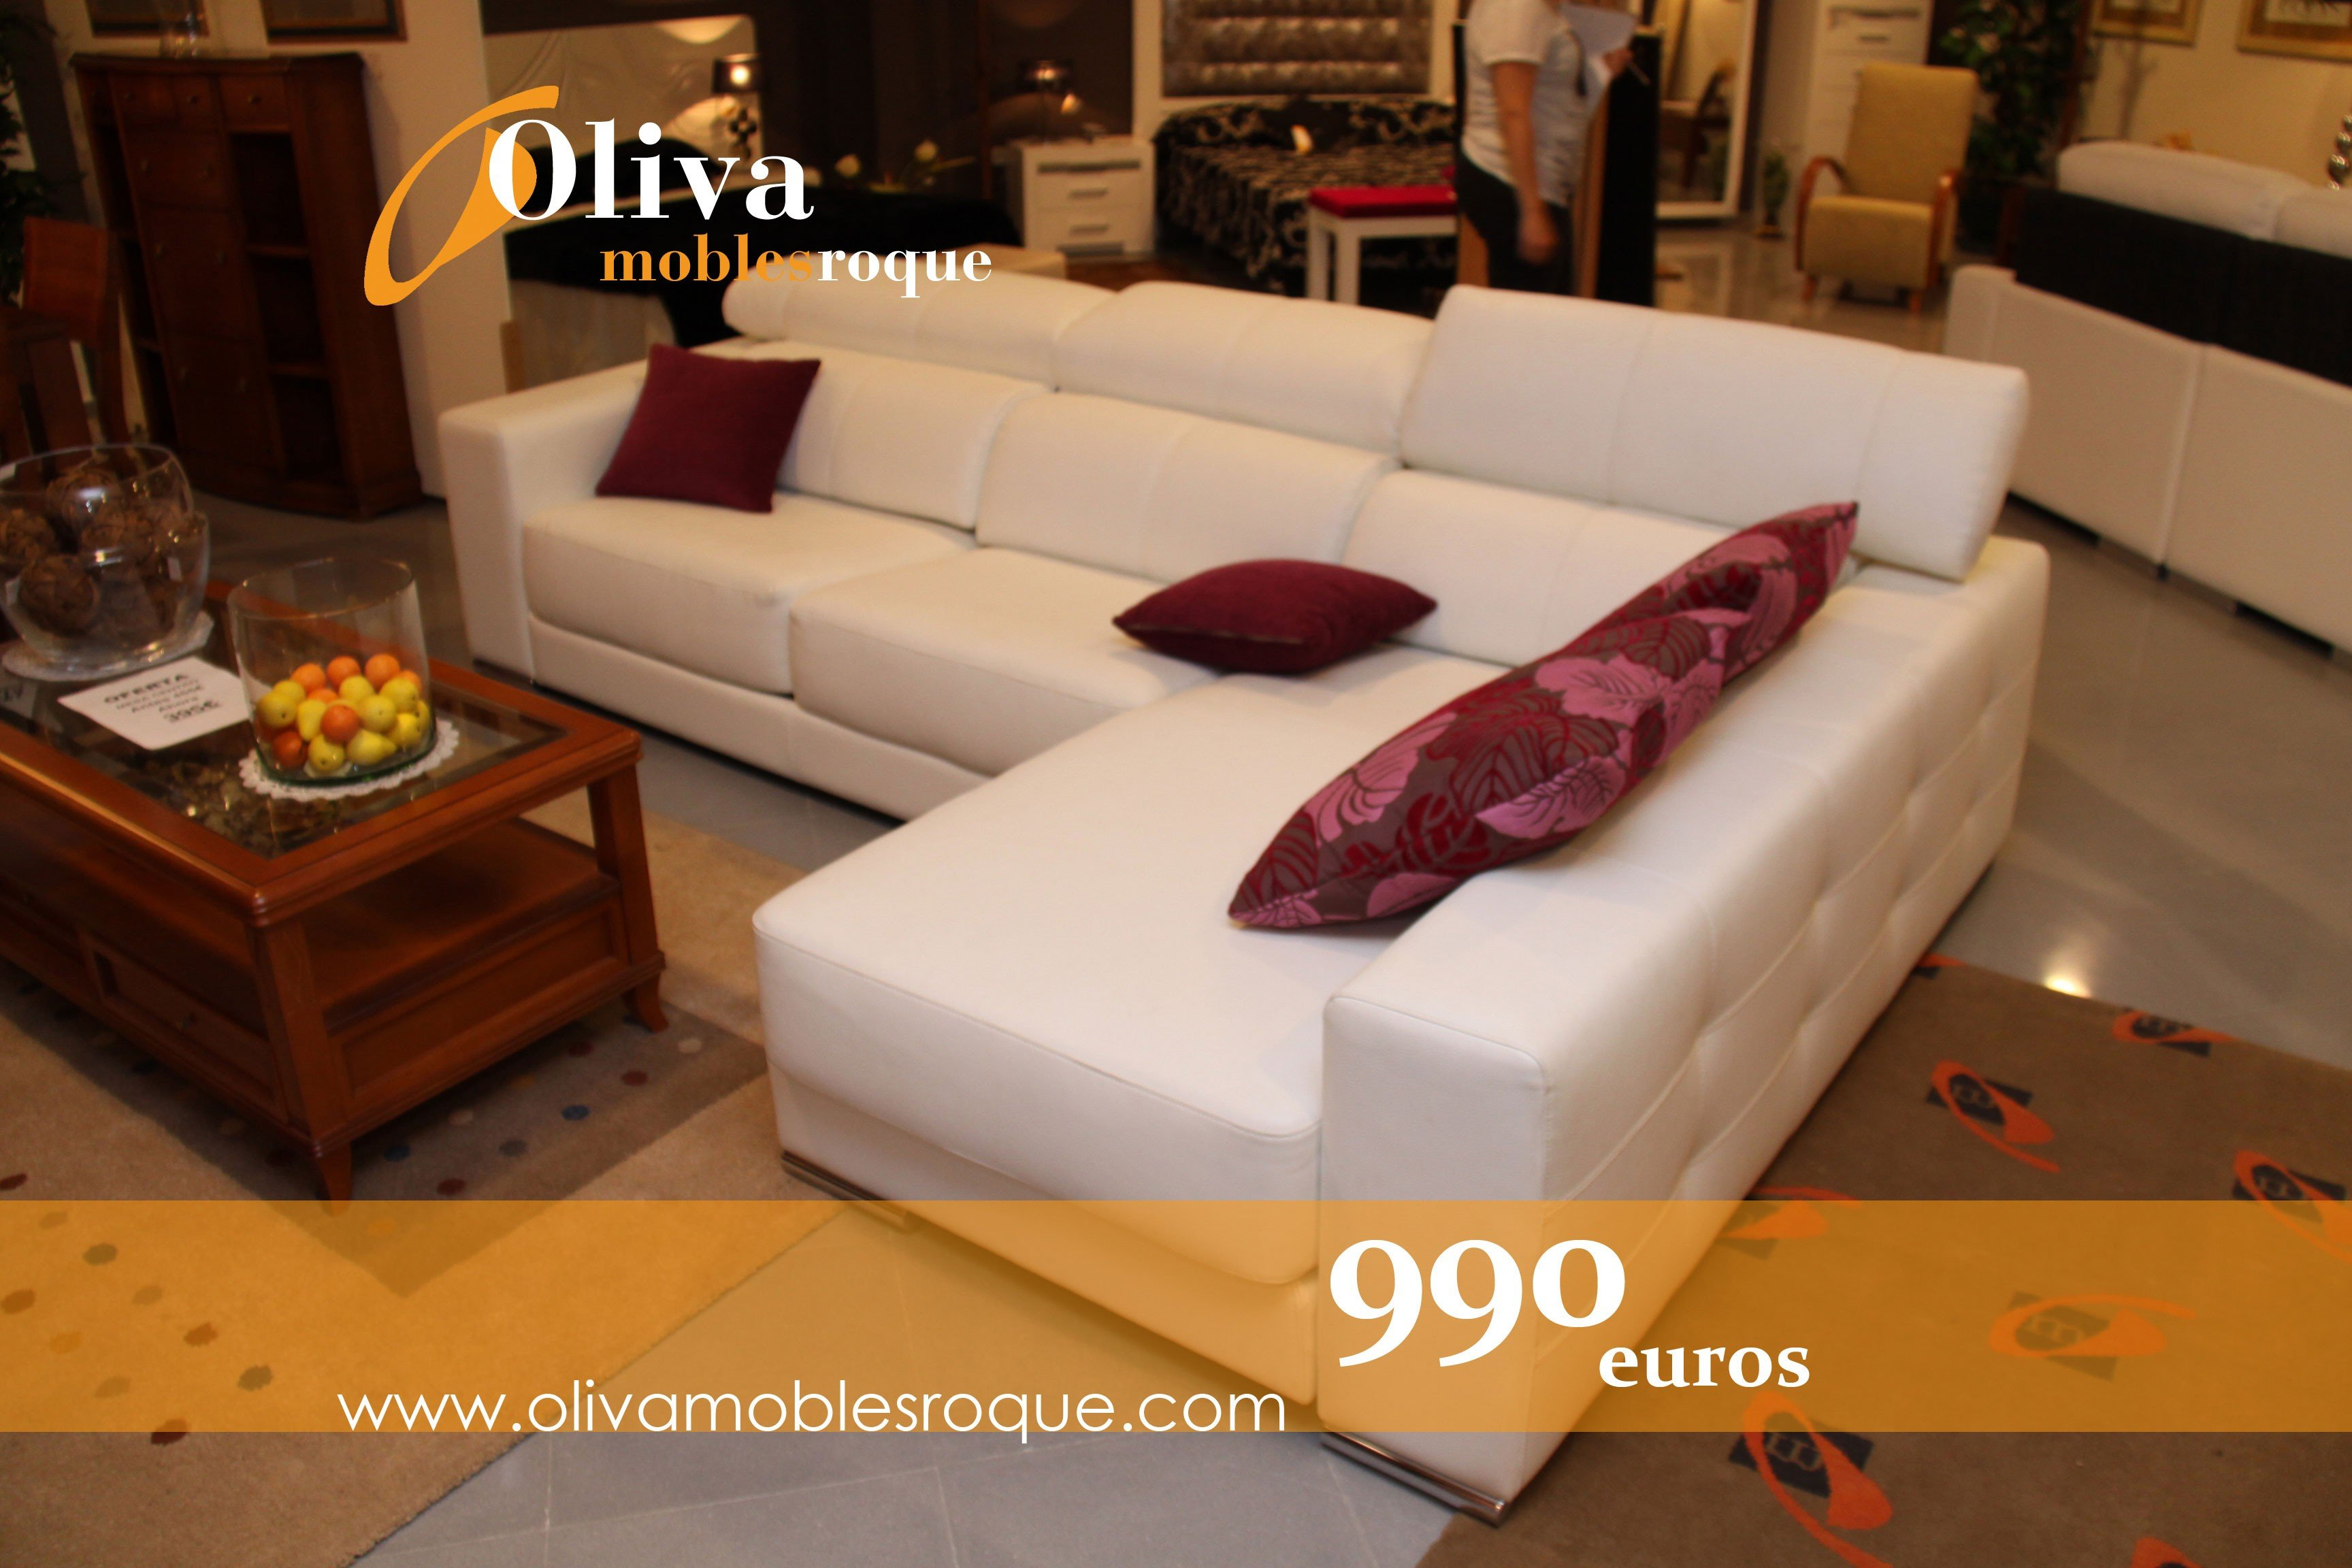 Sofa Outlet Alicante Liquidacion De Sofa Chaise Longue De Descans Disseny